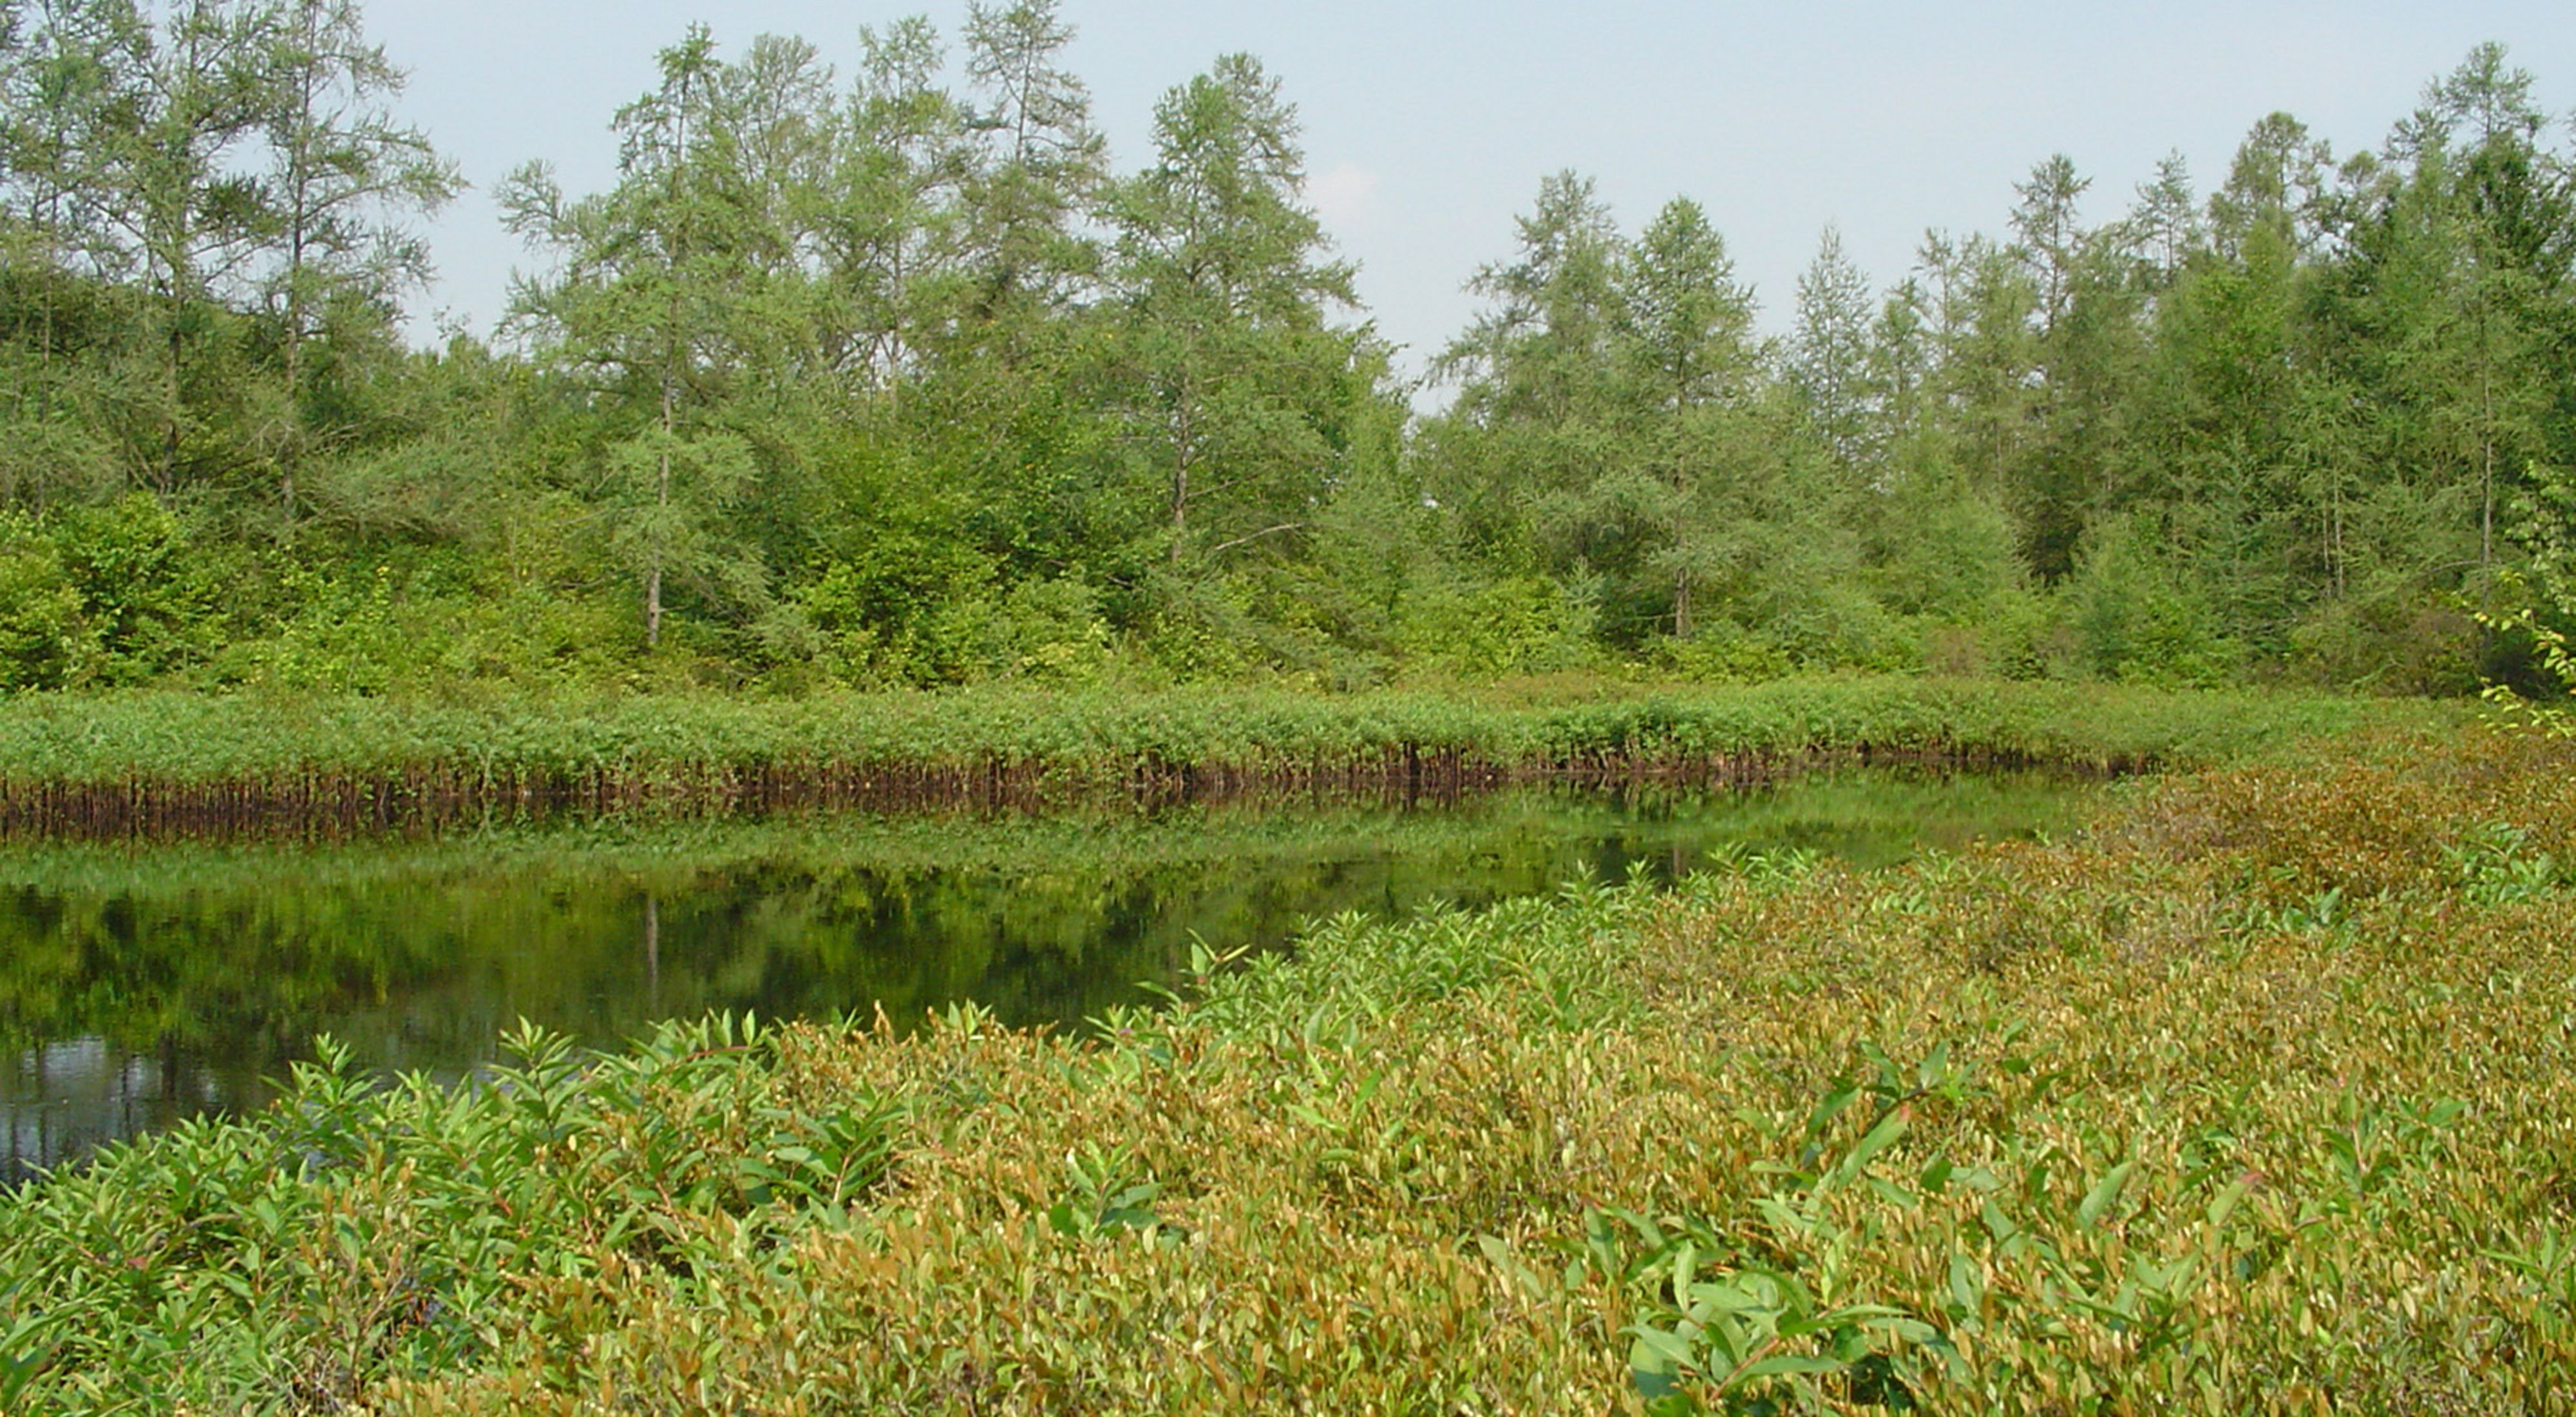 a rare tamarack-ringed, kettle-hole bog in northeast Ohio.